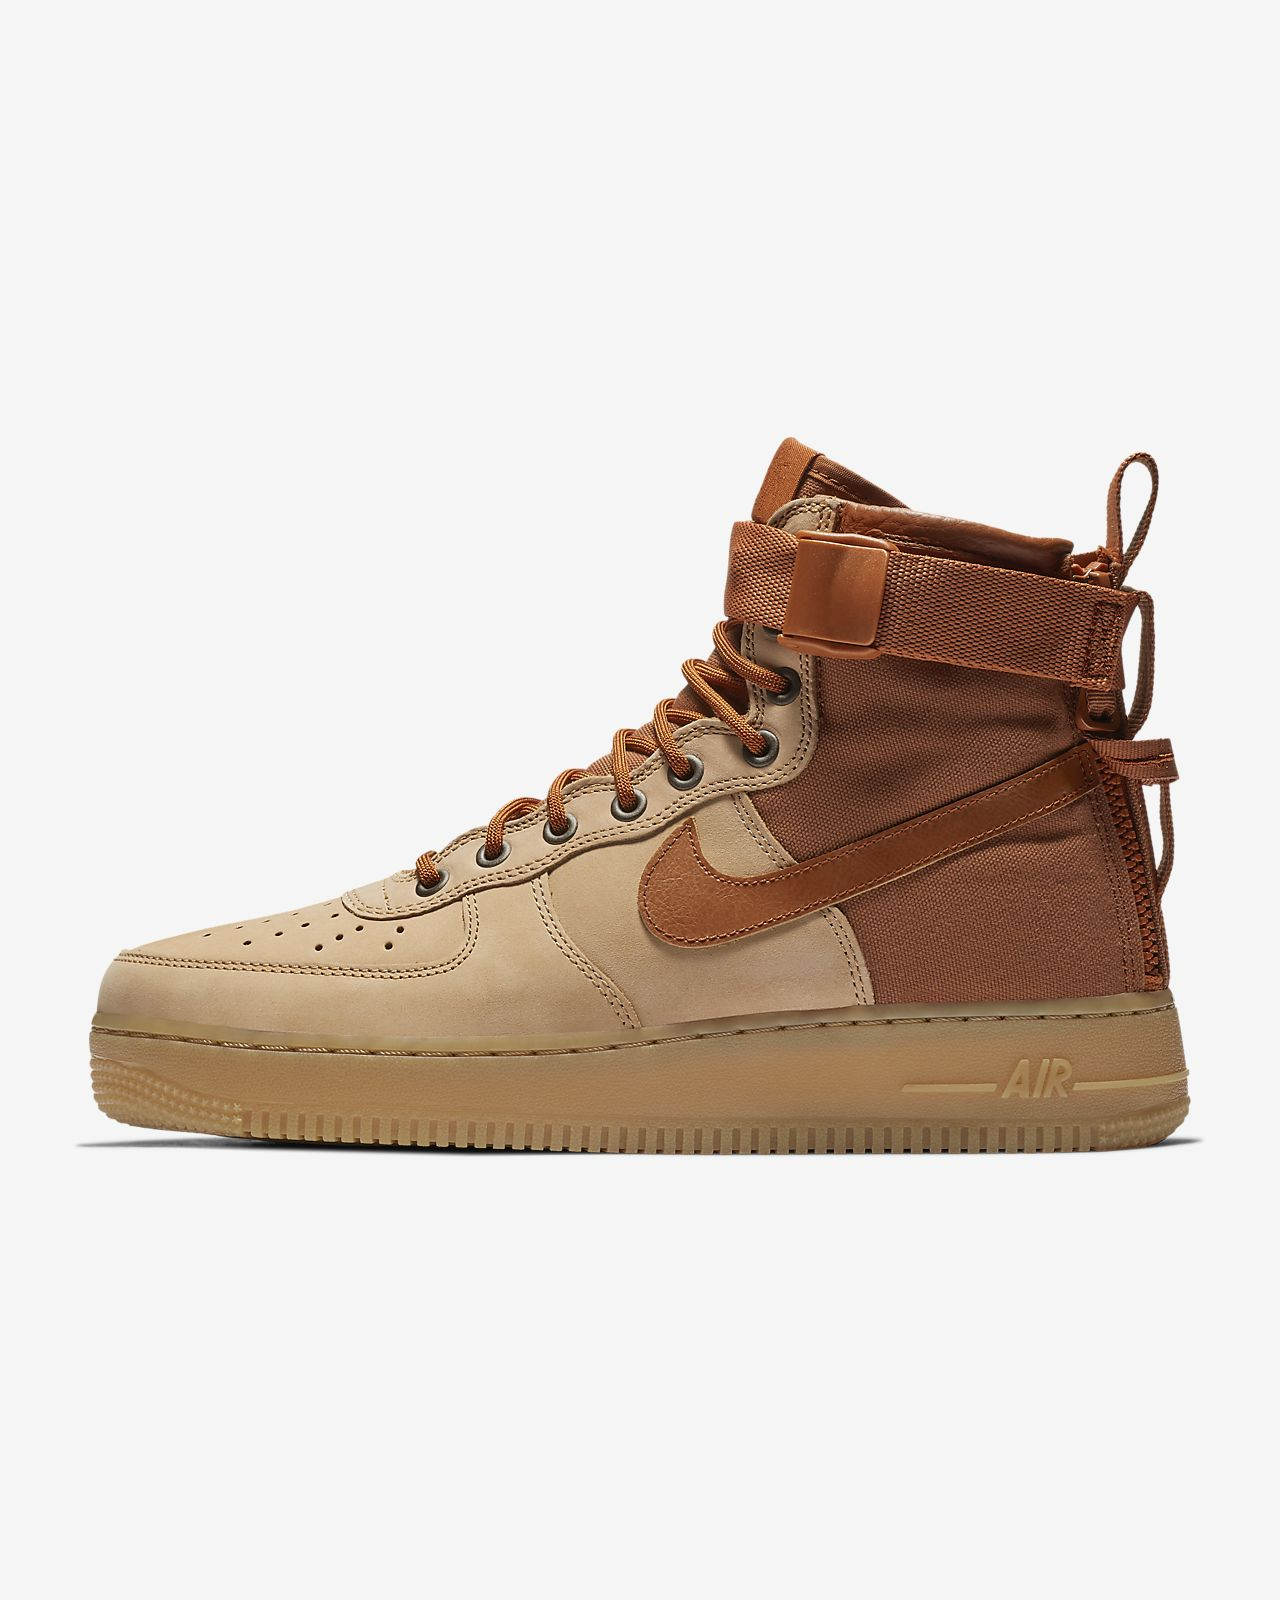 new arrivals 04373 309c5 Scarpa Nike SF Air Force 1 Mid Premium - Uomo. Nike.com CH